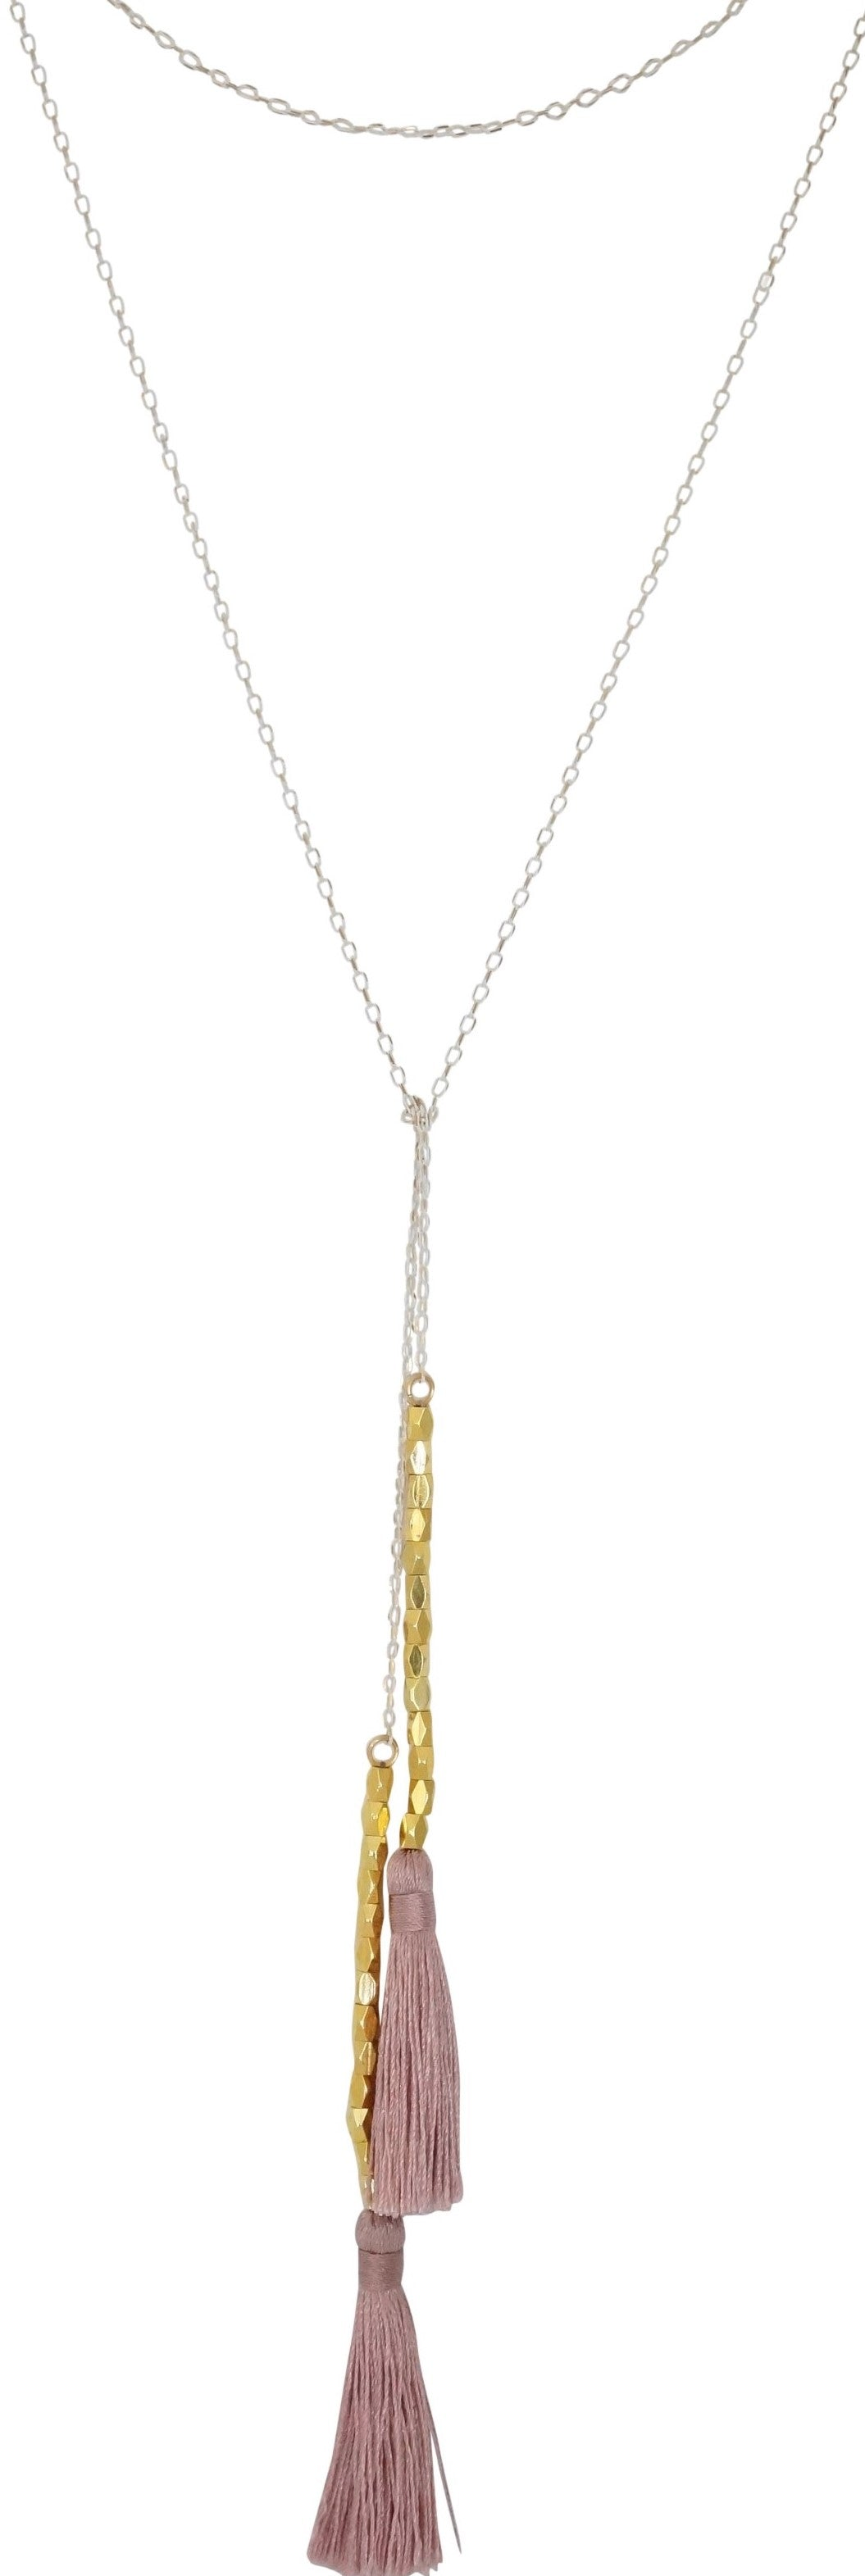 Radiance Necklace - Carolyn Hearn Designs